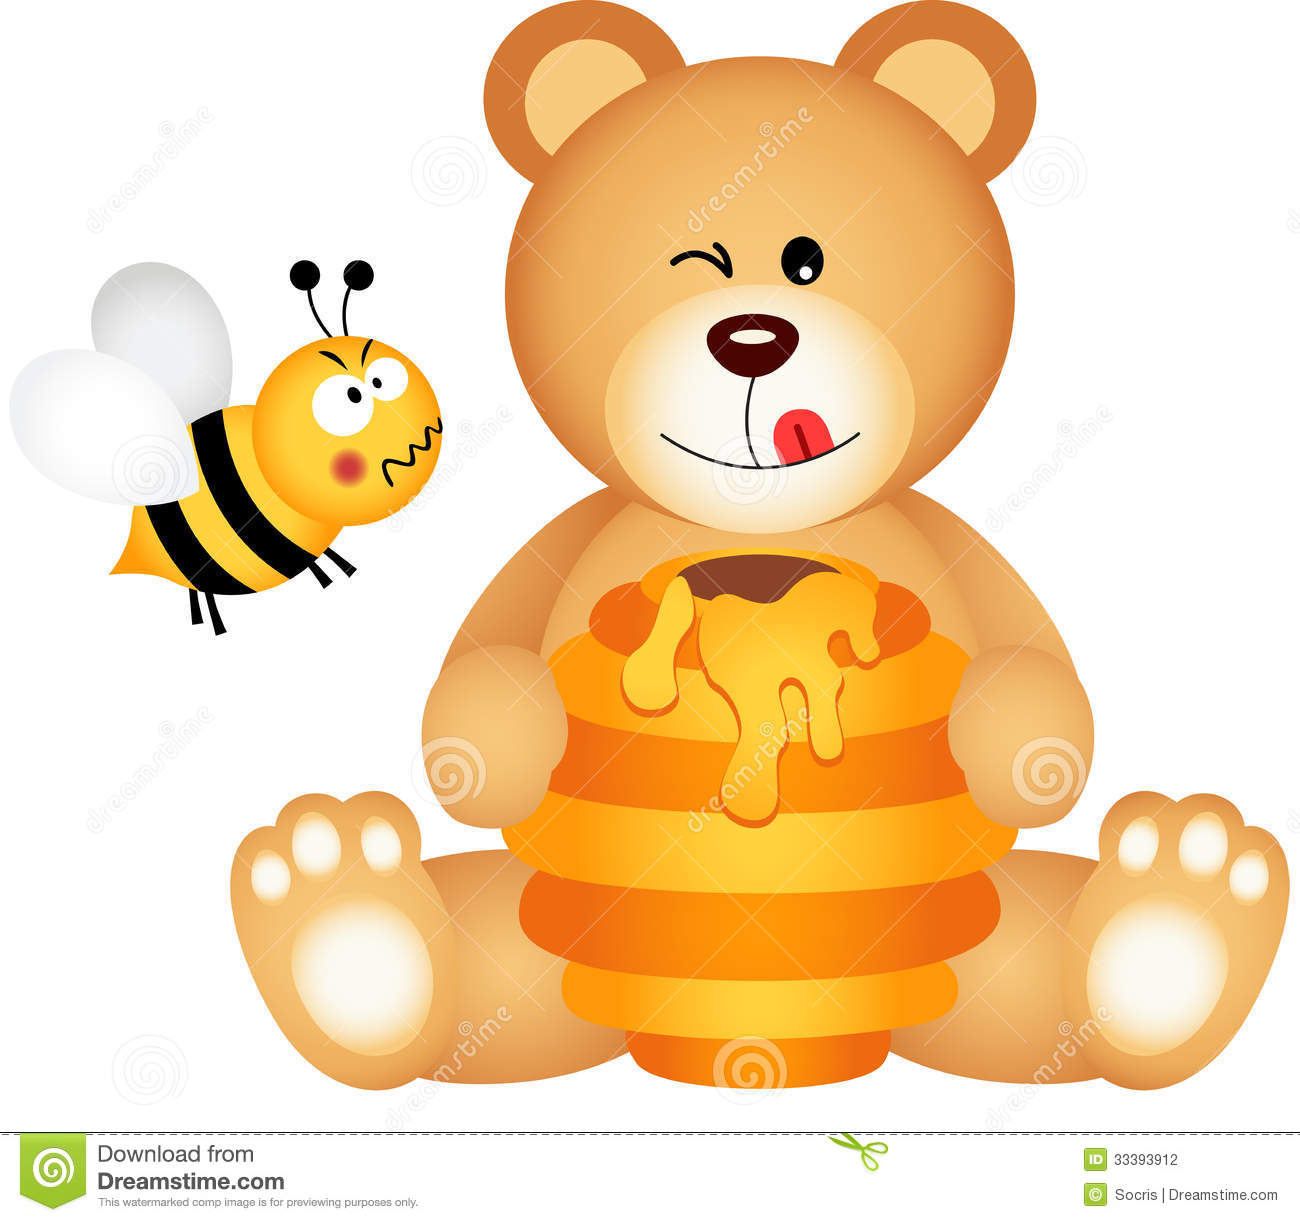 Scalable Vectorial Image Representing A Teddy Bear Eats Honey And Bee